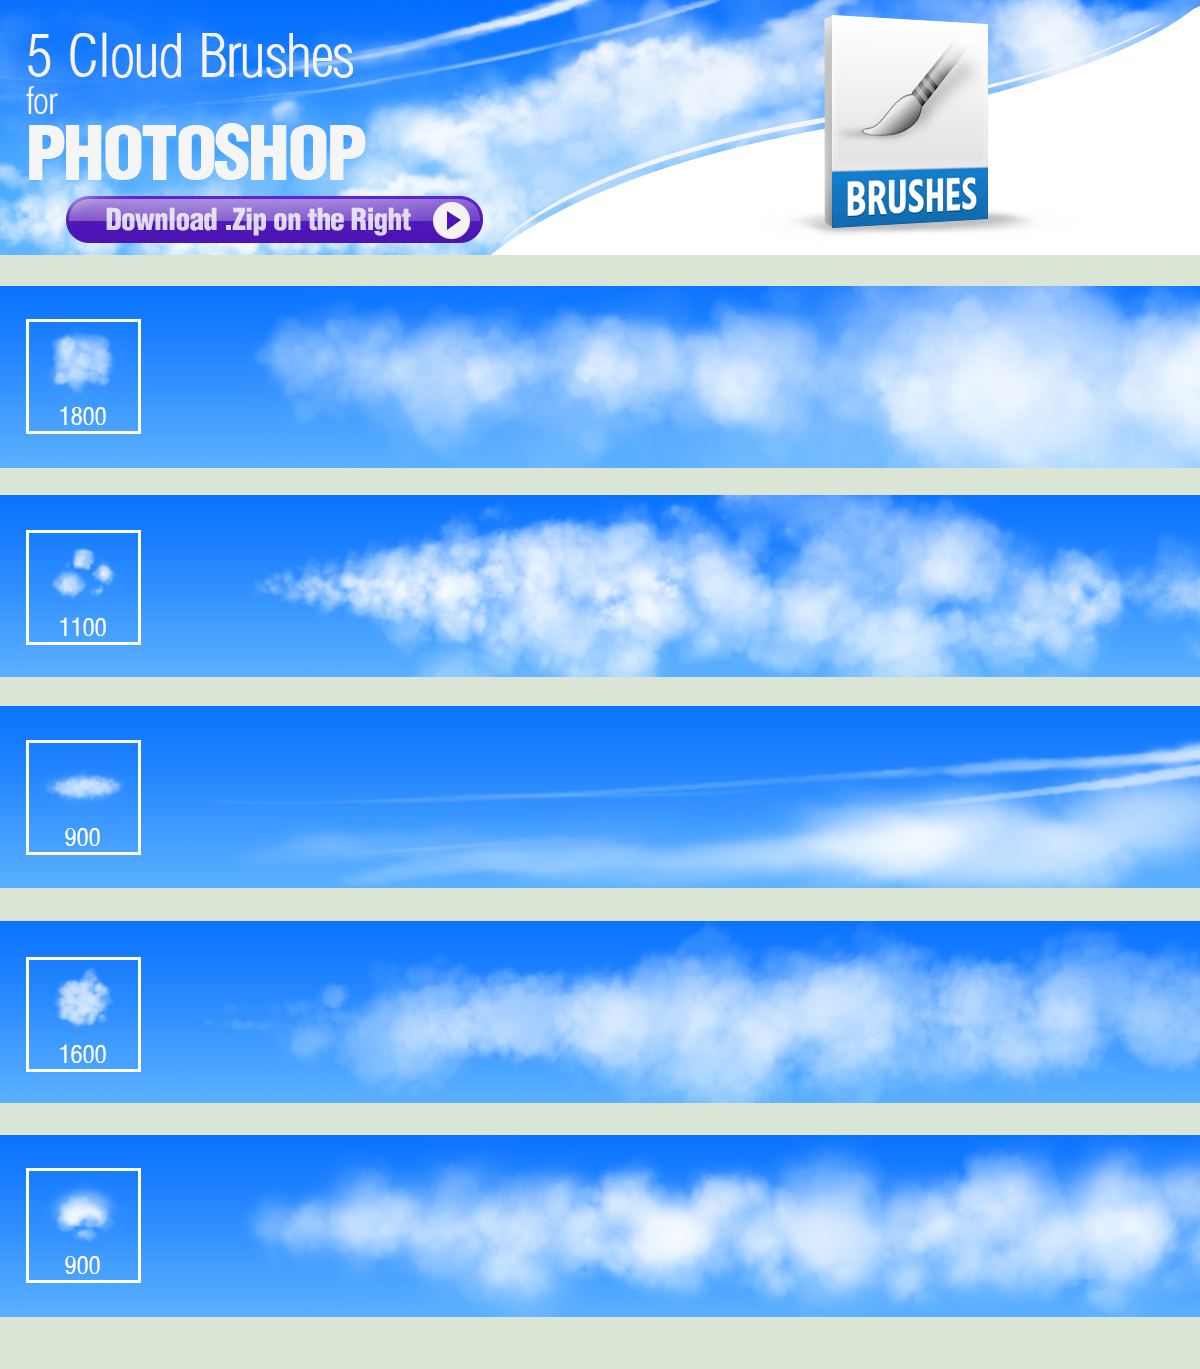 5 photoshop brushes for painting clouds by pixelstains on